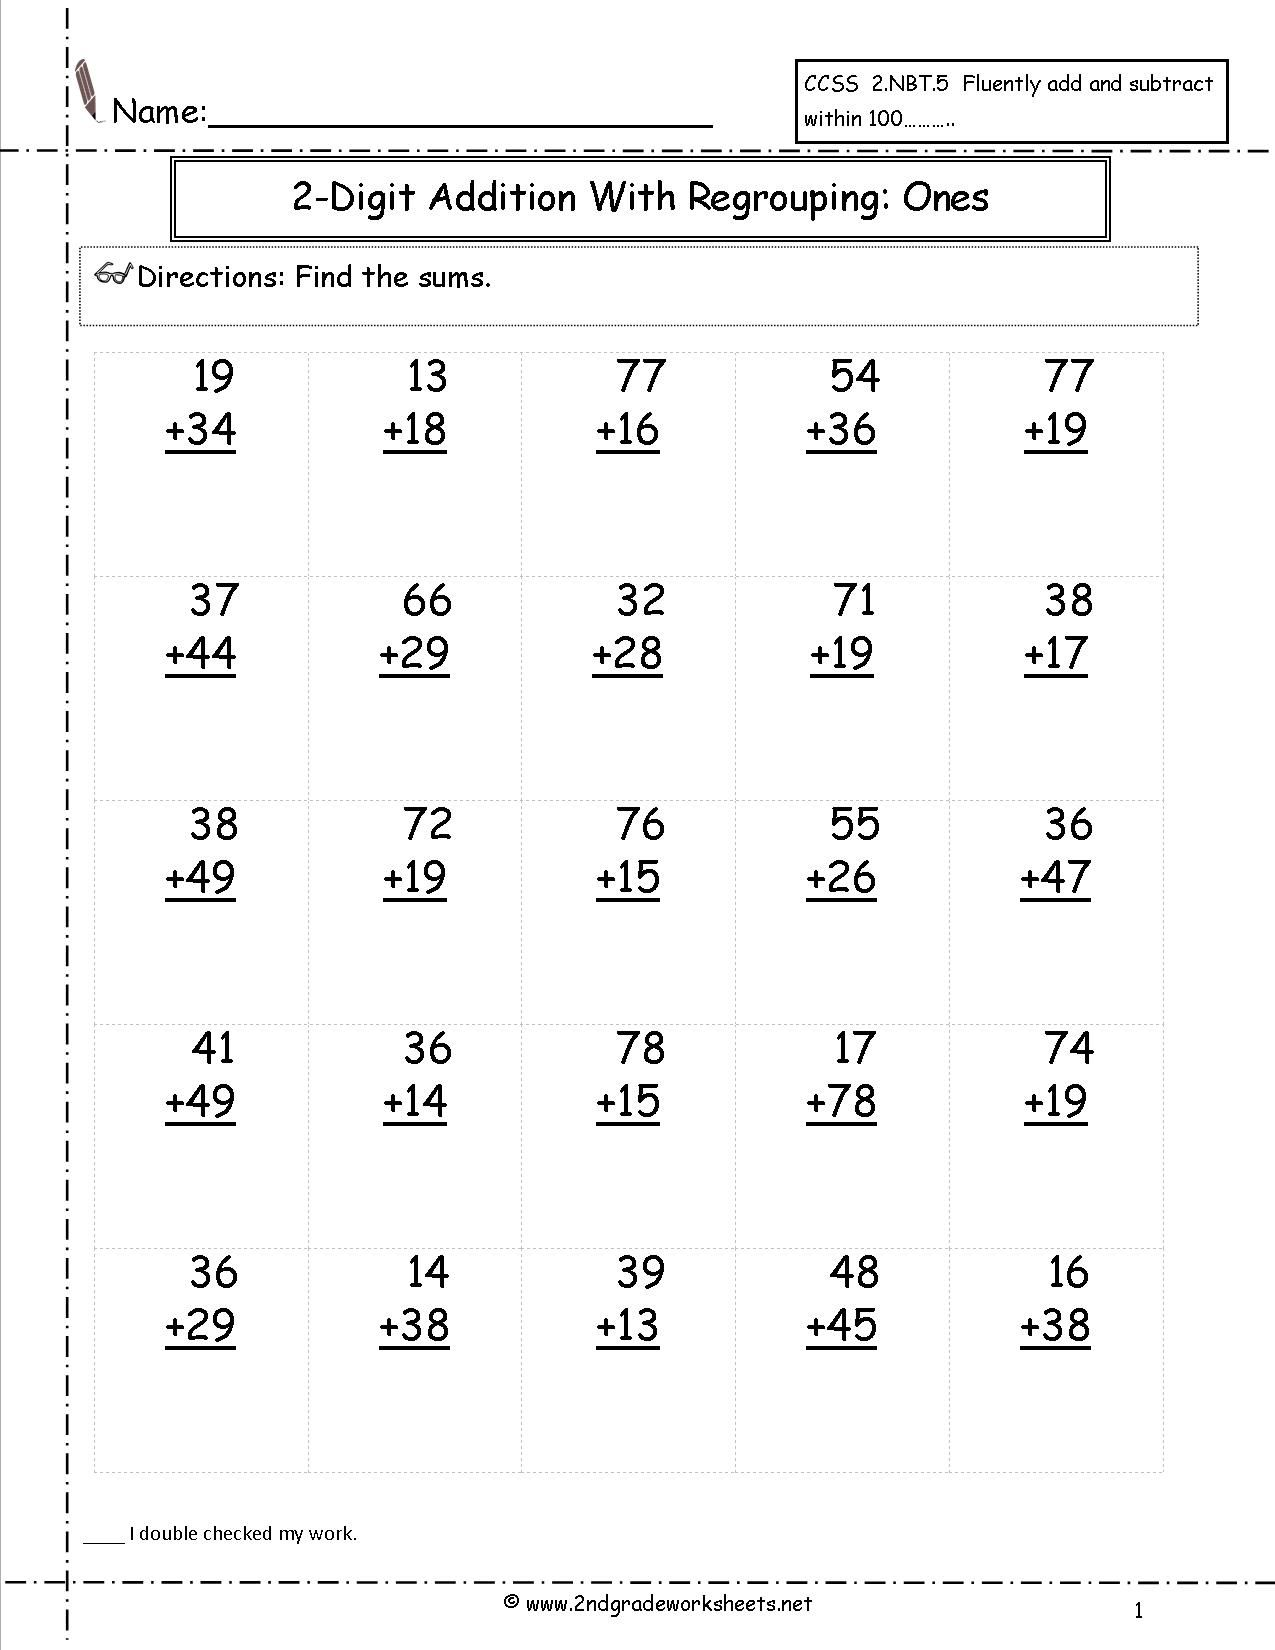 hight resolution of twodigitadditionwithregroupingonesplace25problems1.jpg (1275×1650)   2nd  grade math worksheets